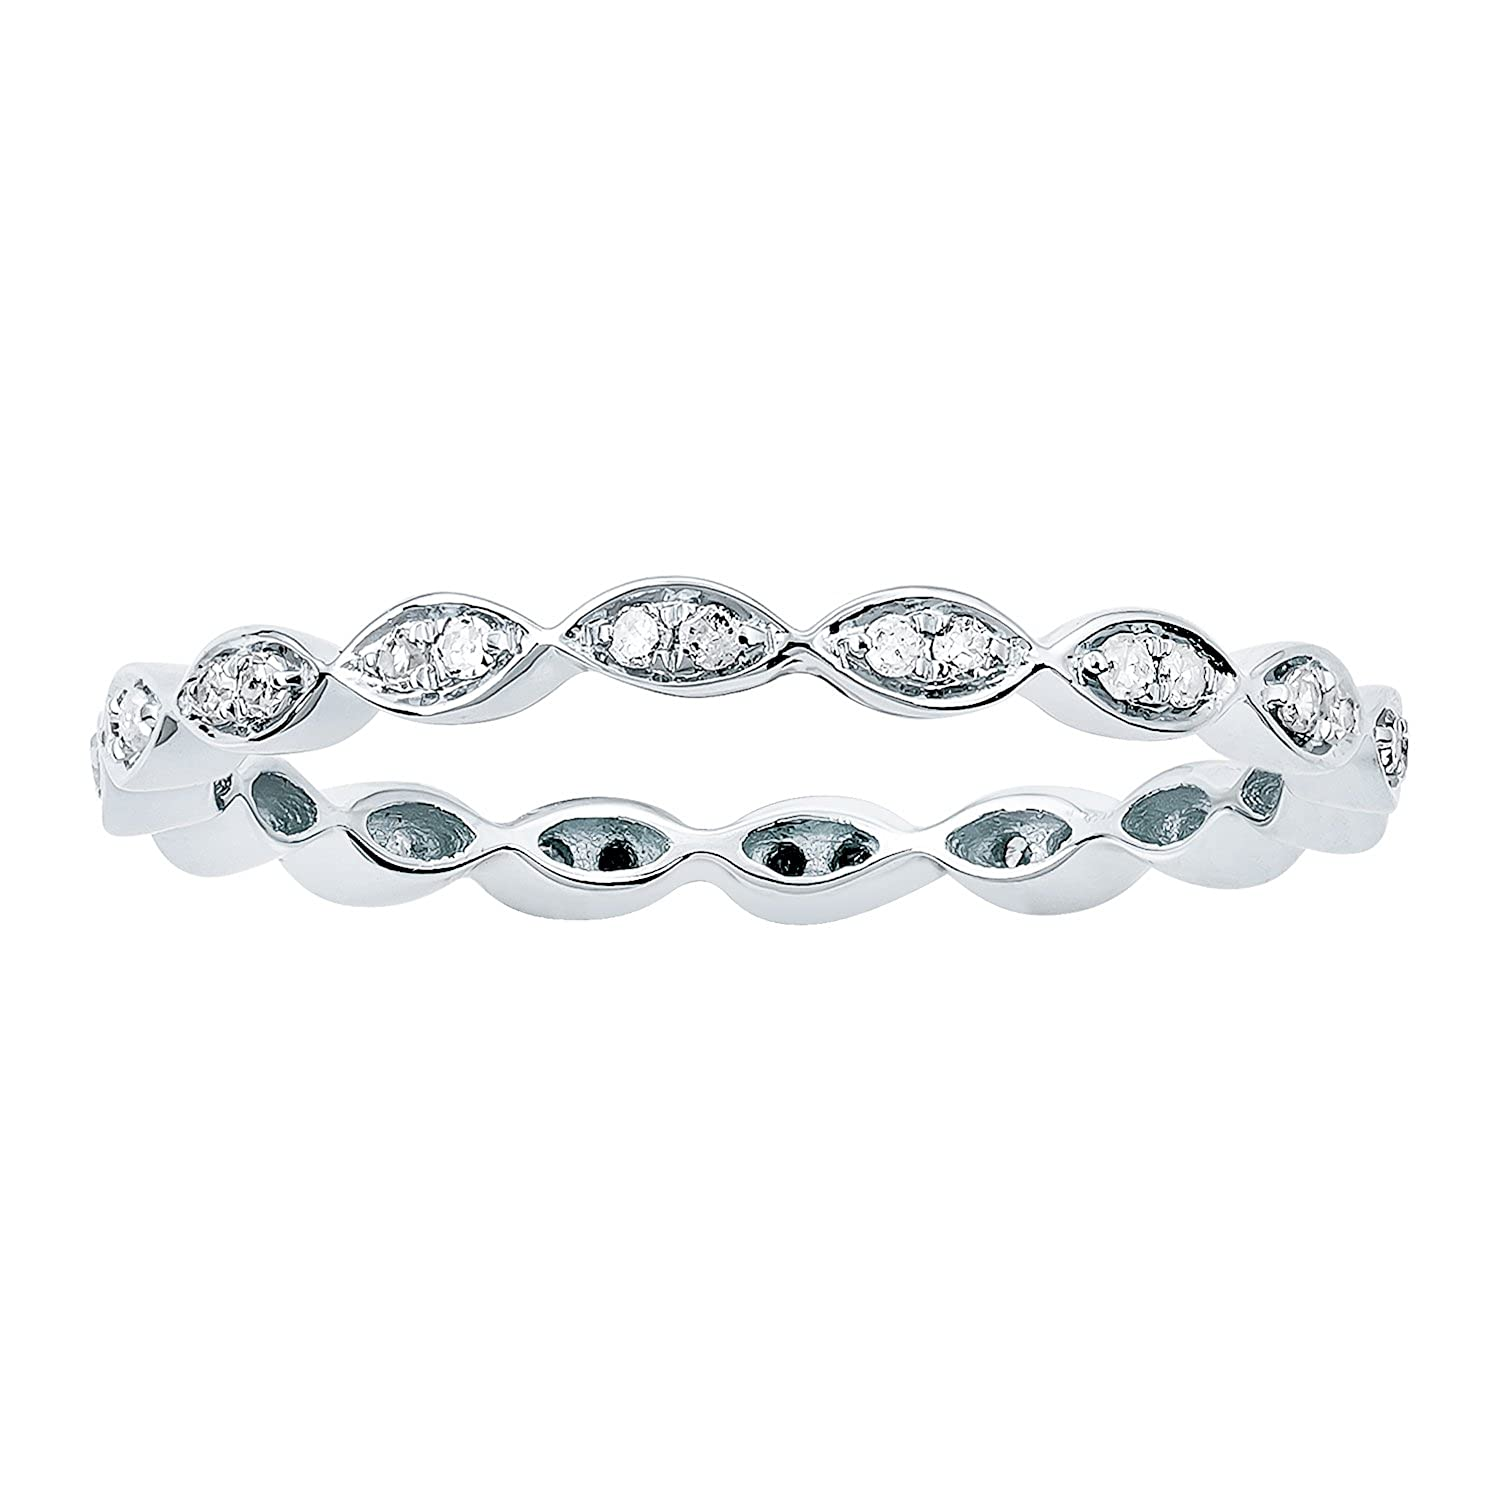 10k White Gold Stackable Eternity Diamond Wedding Band (1/4 cttw, I-J Color, I2-I3 Clarity) Instagems RG21388PG-PRT